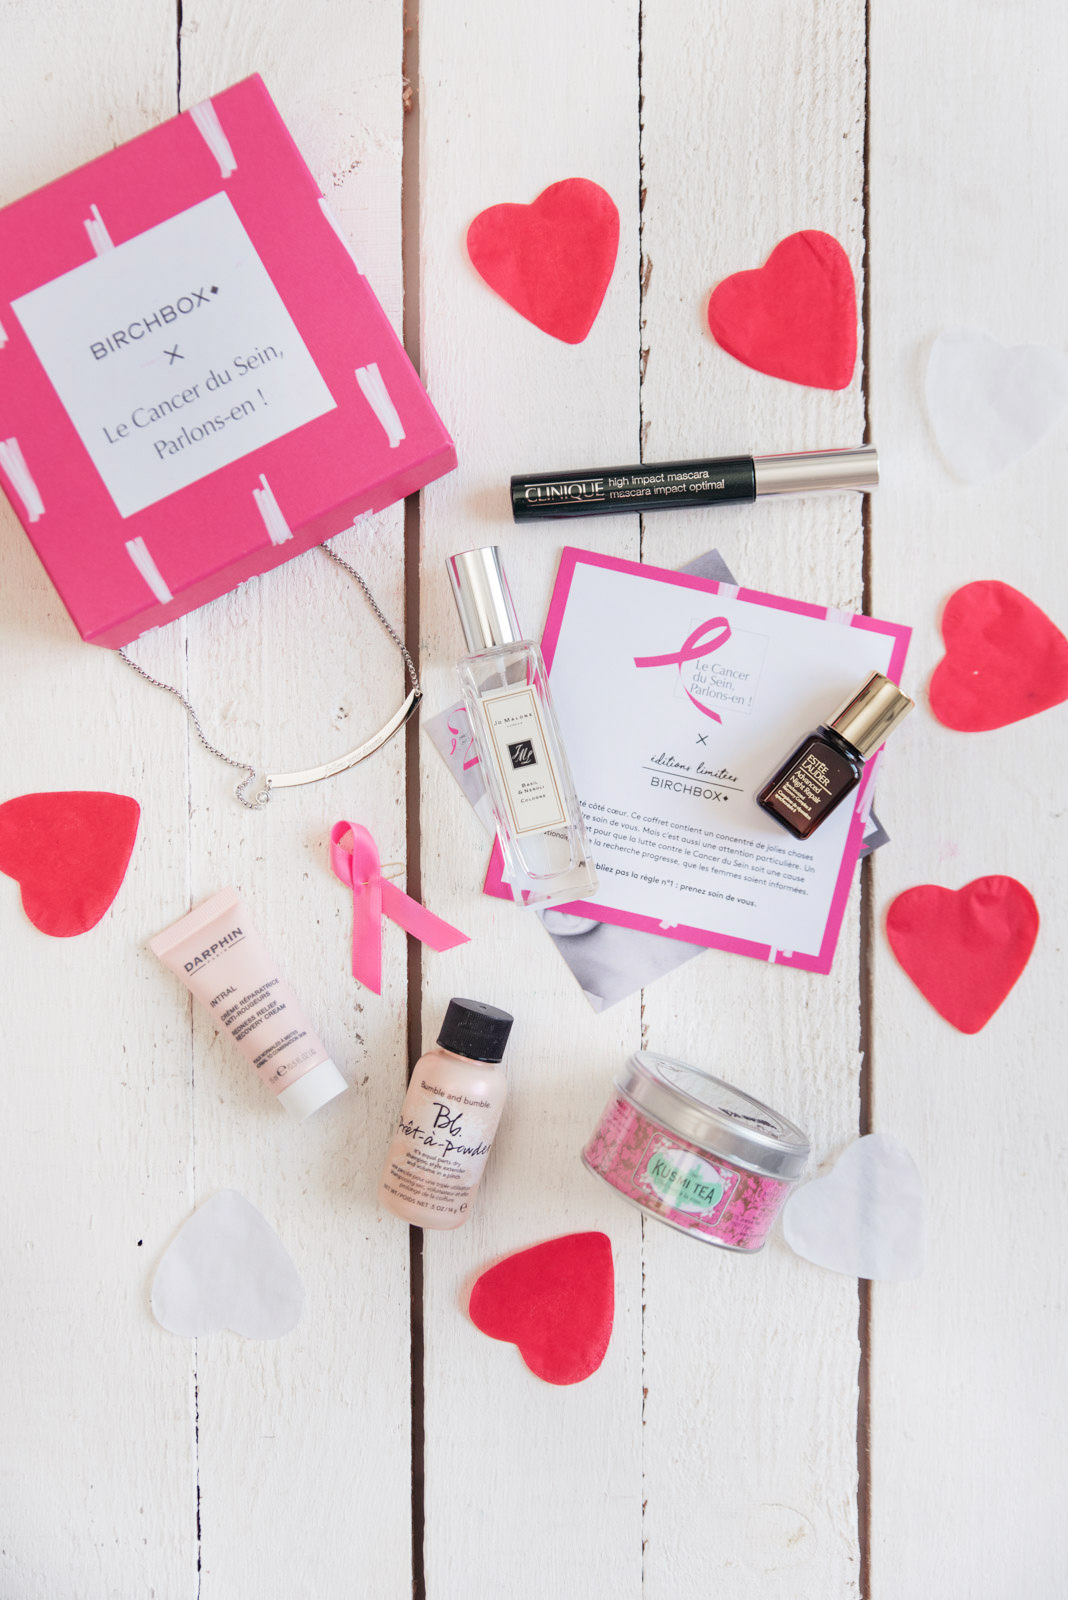 Blog-Mode-And-The-City-Lifestyle-Birchbox-cancer-du-sein